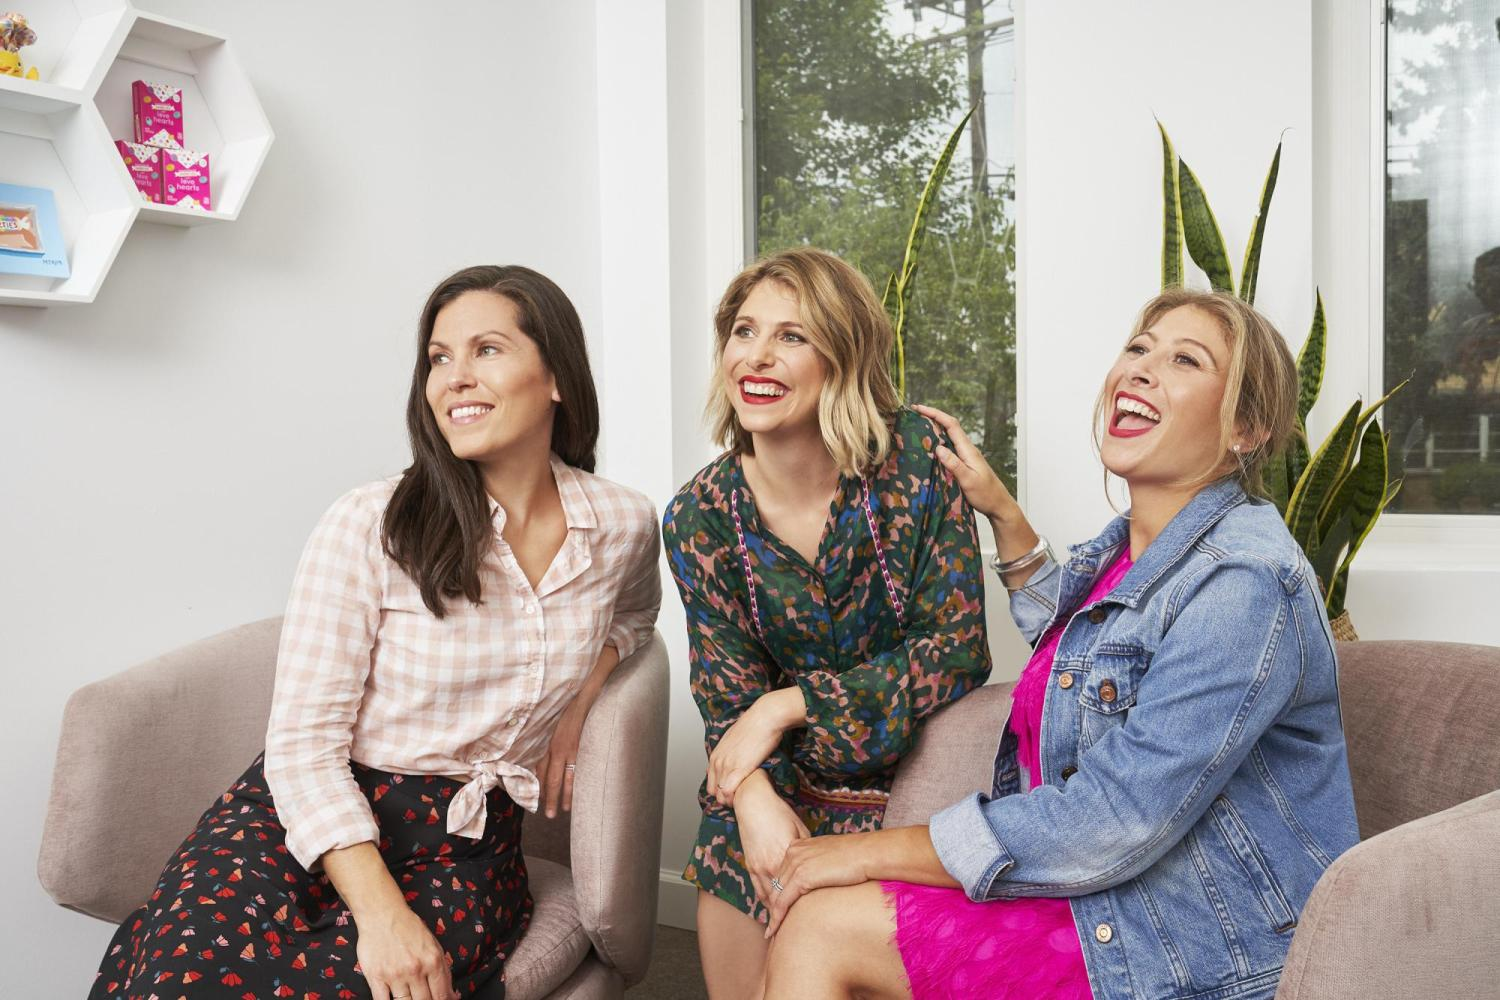 the three women co-presidents of the smarties candy company laugh and smile in their office